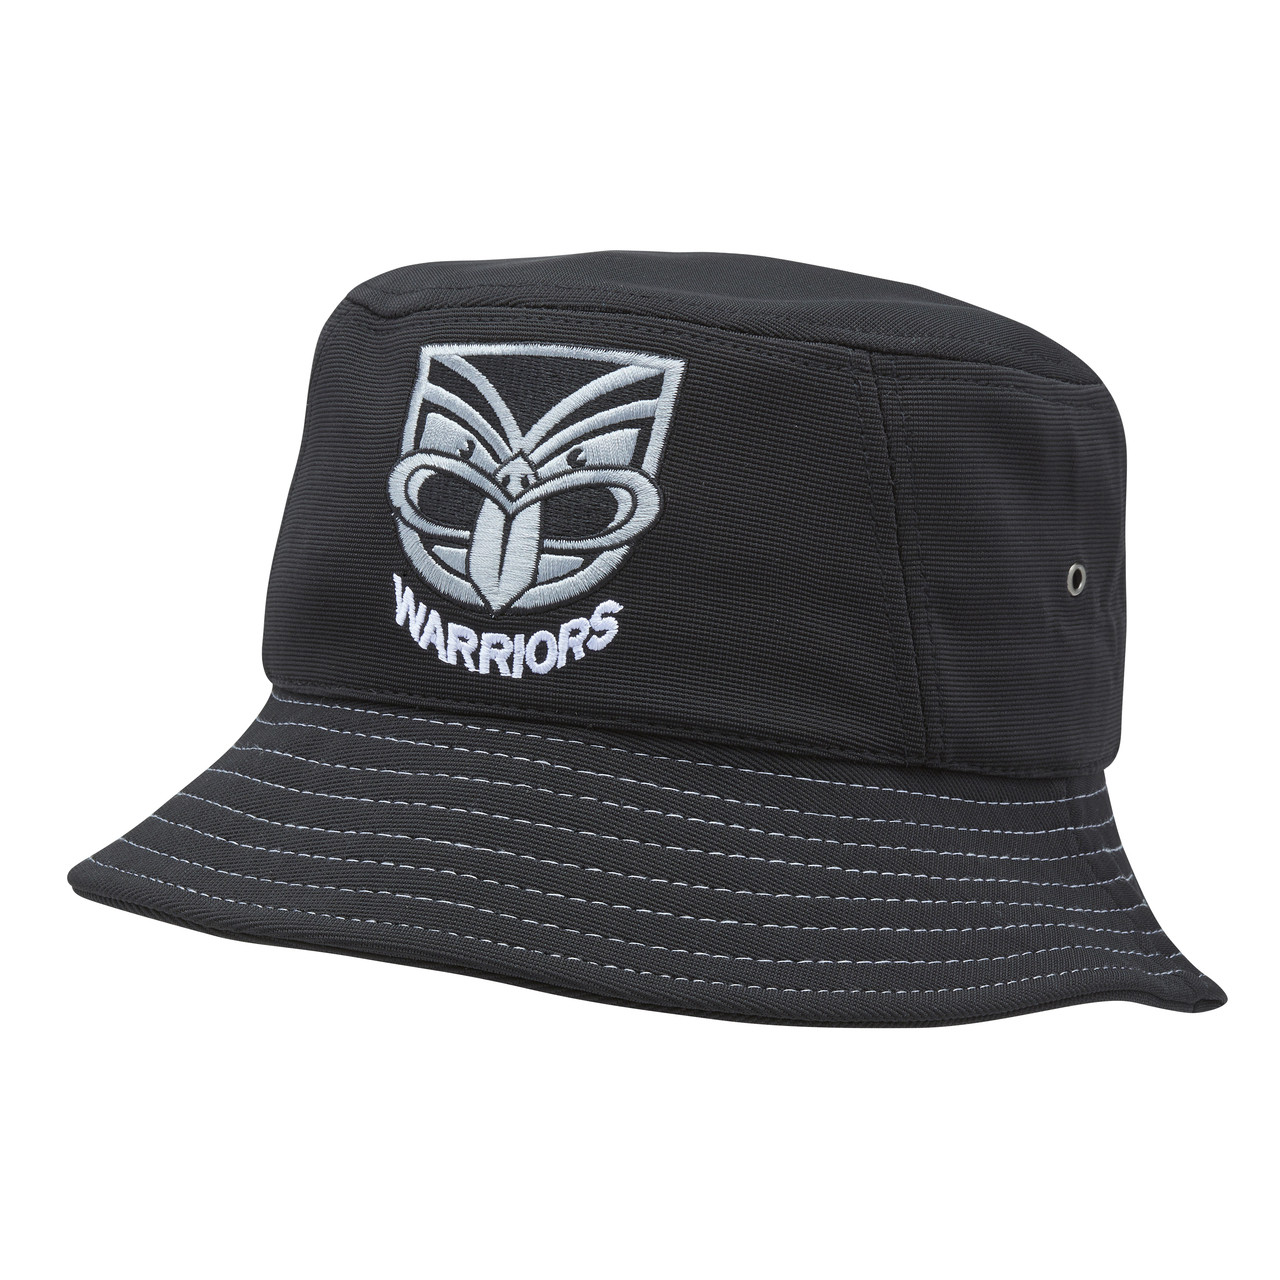 2018 Warriors Classic Bucket Hat Polytwill - Warriors Superstore eb00e850b00